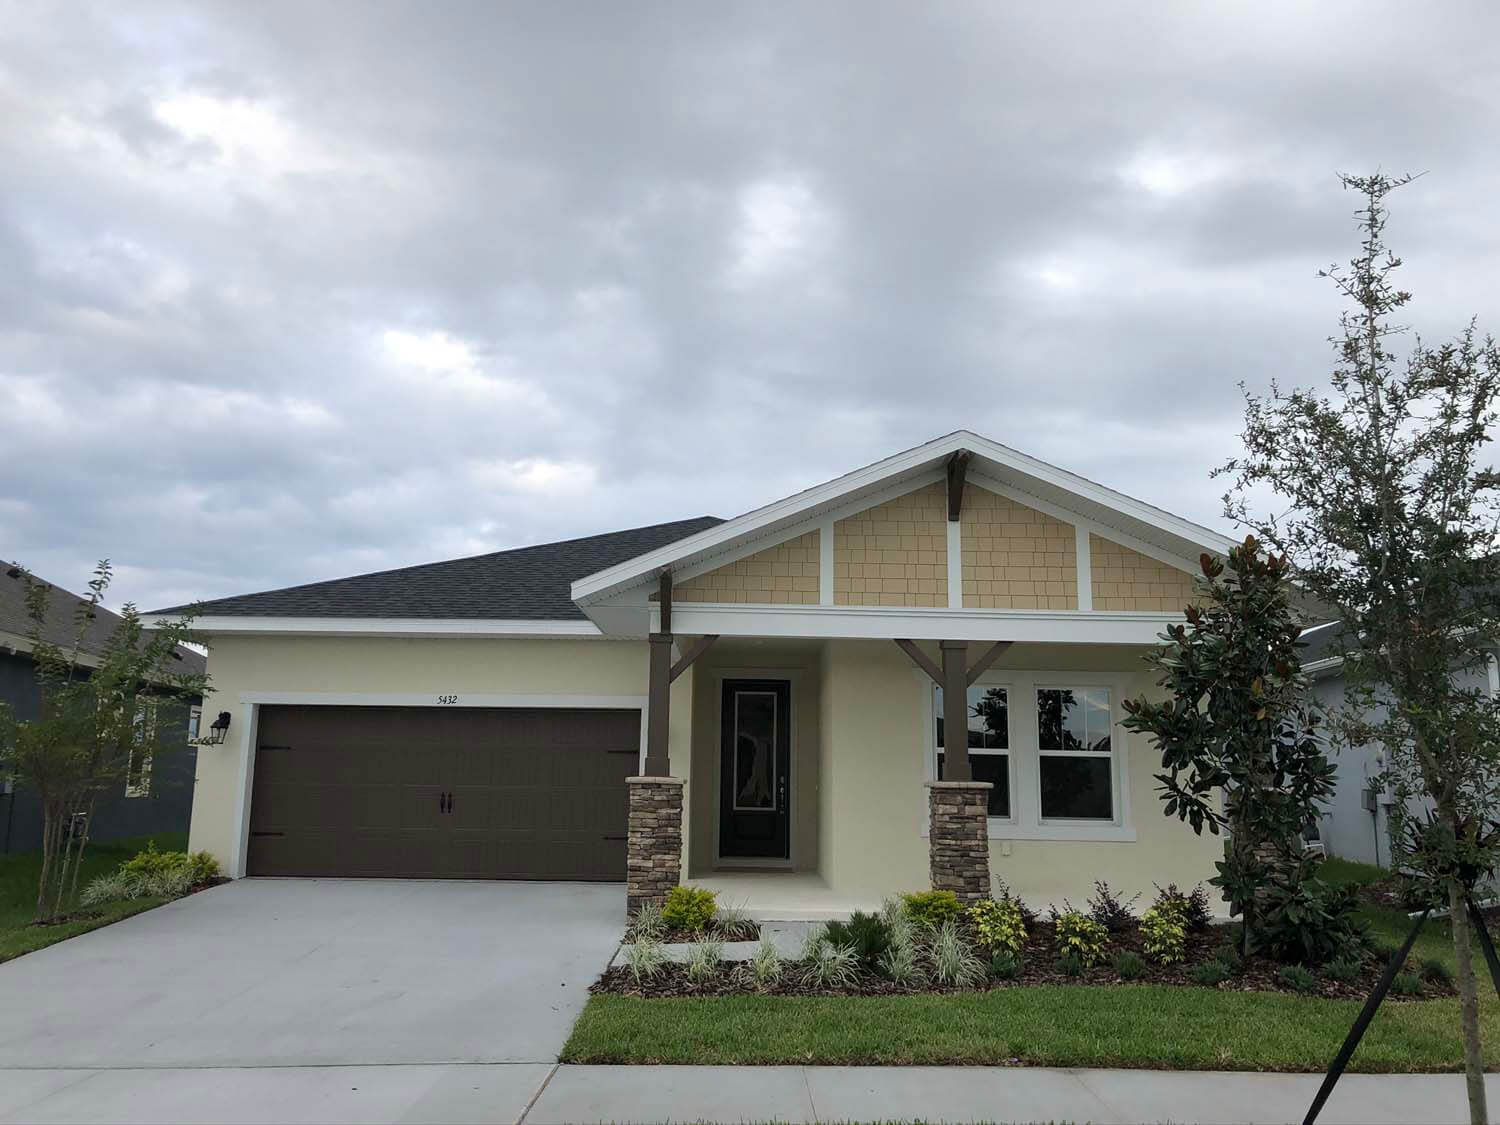 New Tampa Single Family Home Quick Possession Northwood 2 in Waterset, located at 5432 Silver Sun Dr, Apollo Beach 33572 (LOT 15) Built By Cardel Homes